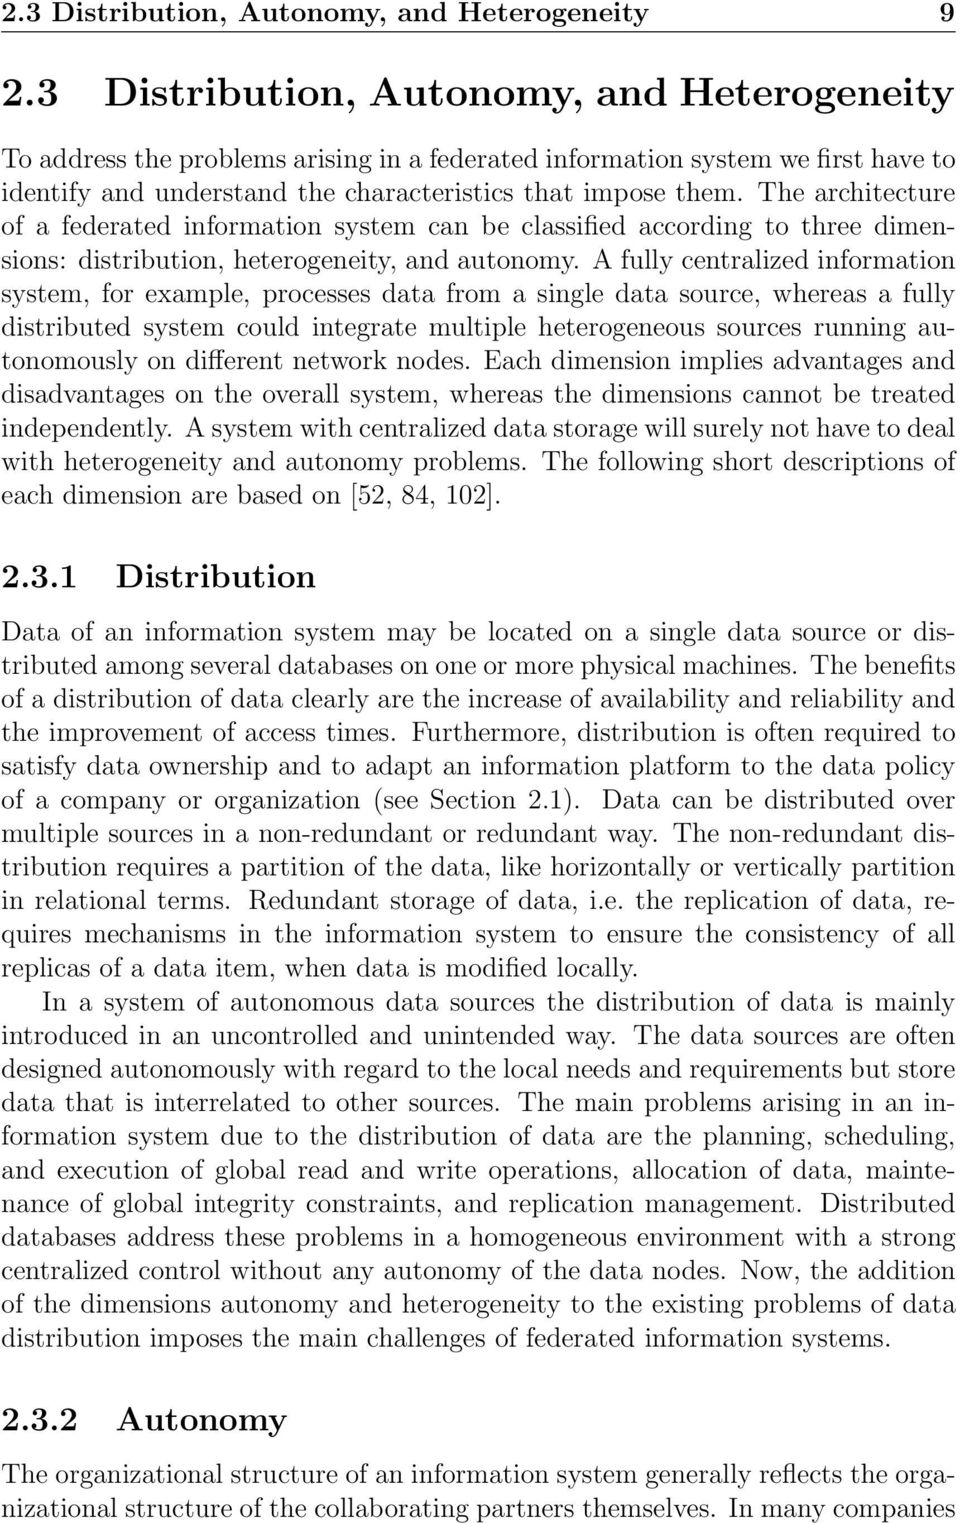 The architecture of a federated information system can be classified according to three dimensions: distribution, heterogeneity, and autonomy.